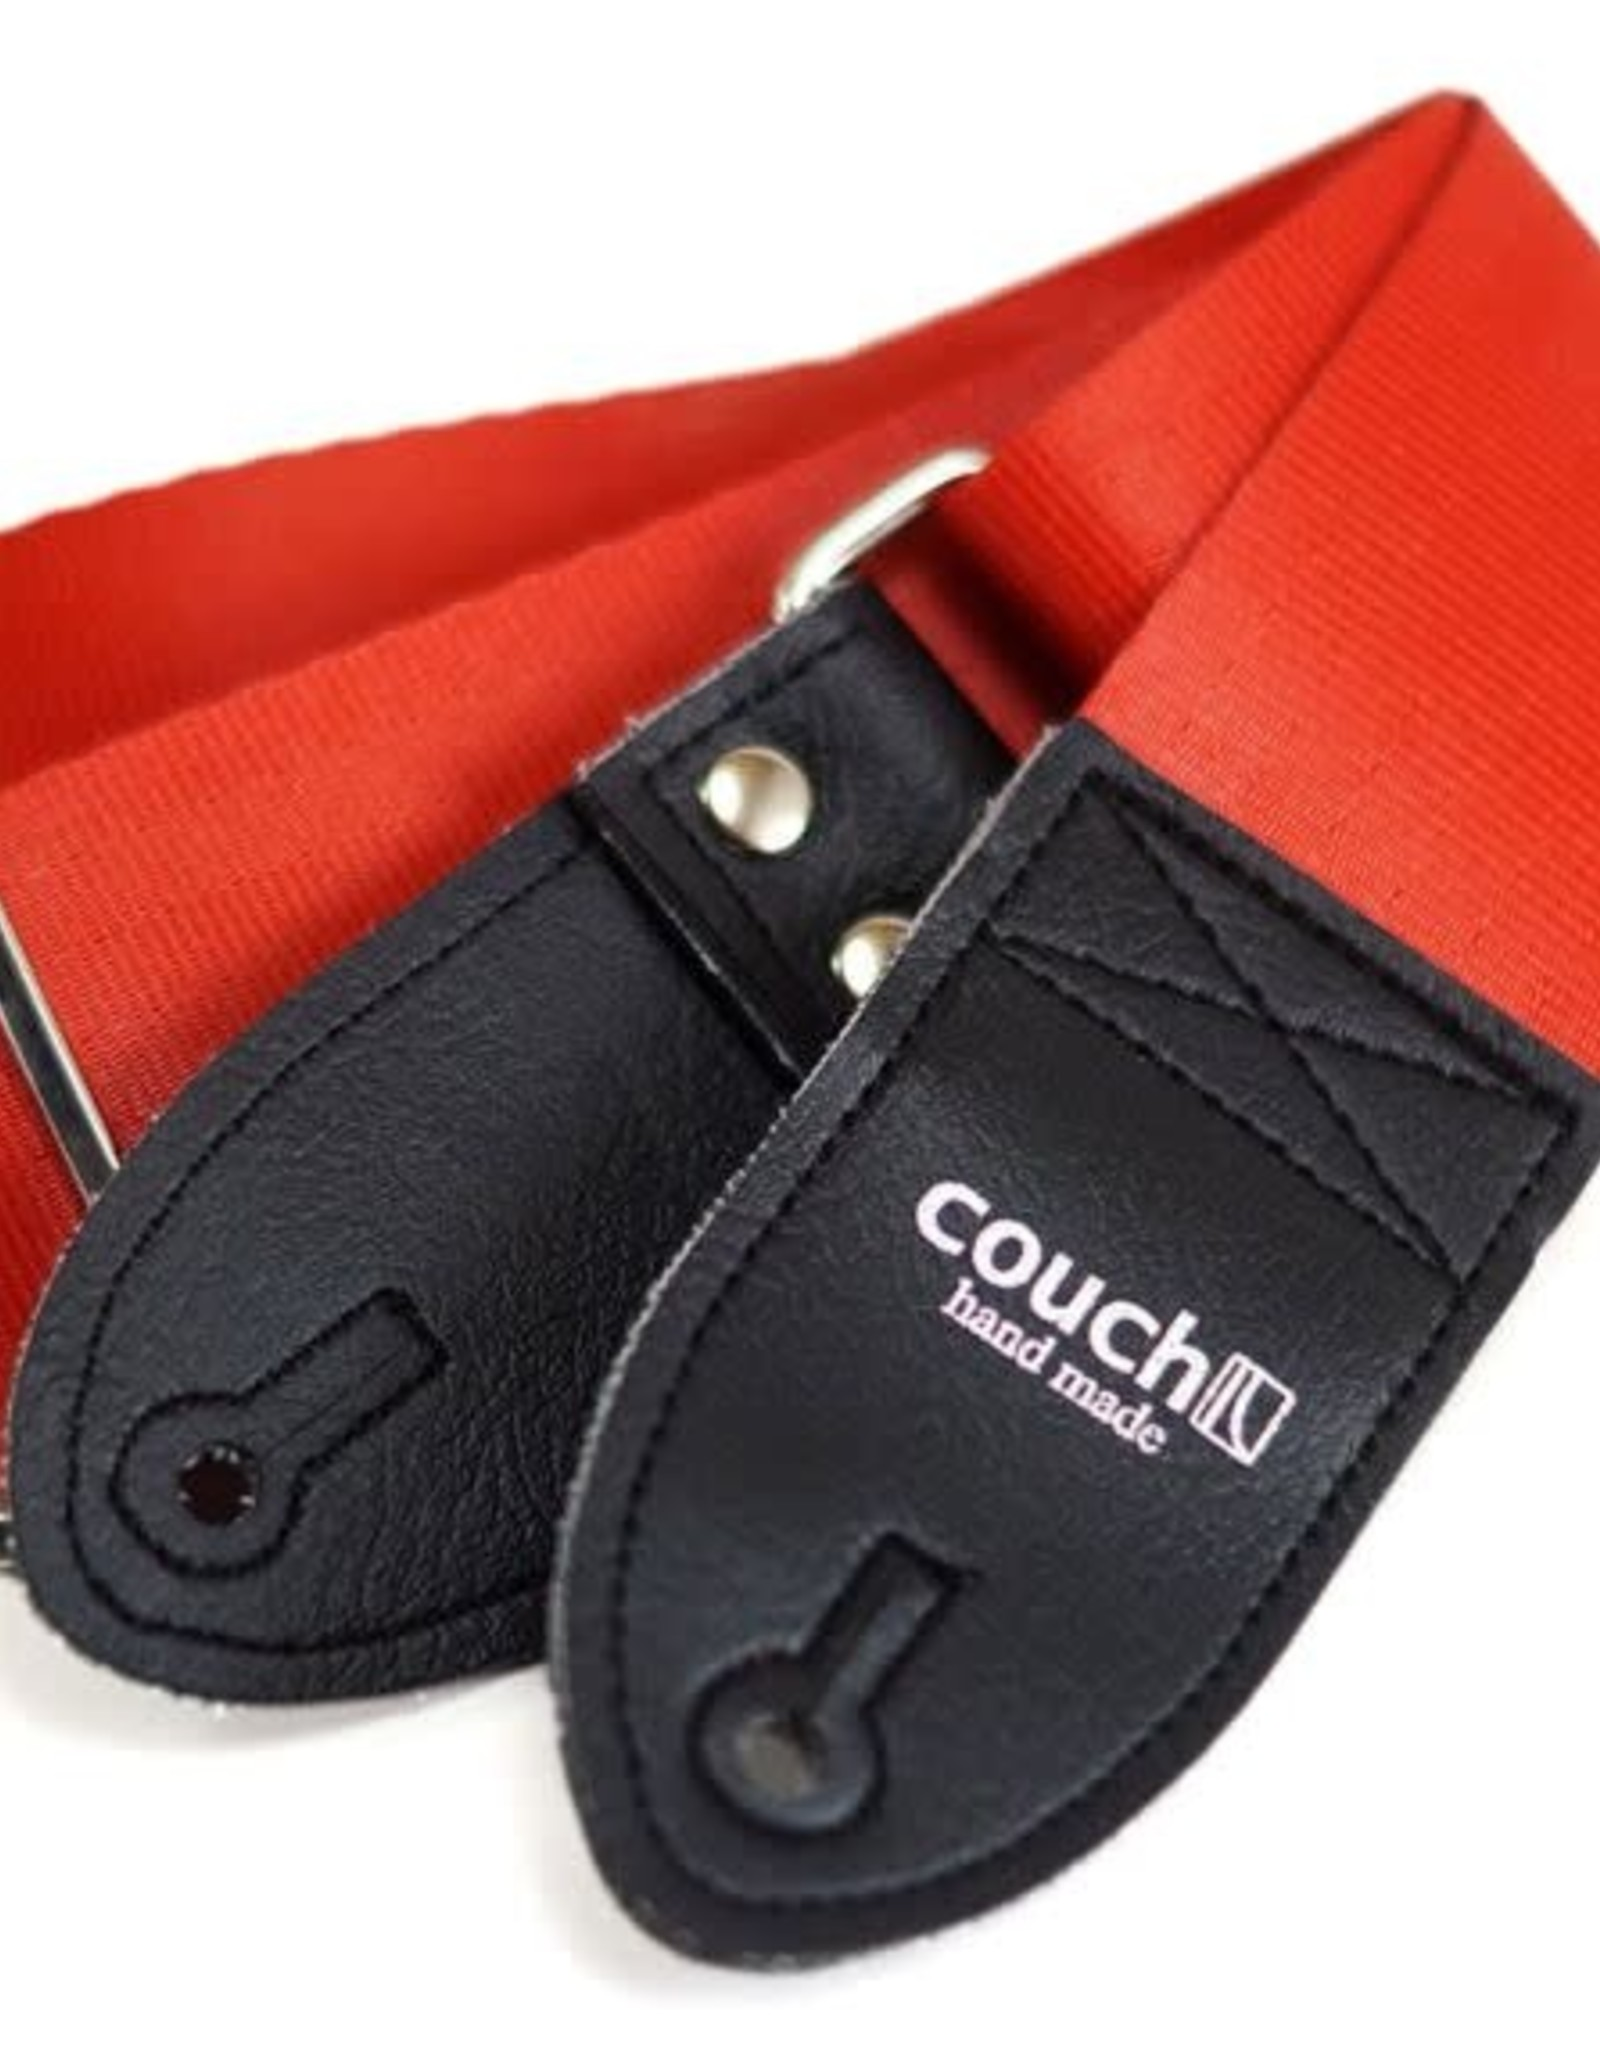 Couch Straps Couch Straps Pure Bright Red Recycled Seatbelt